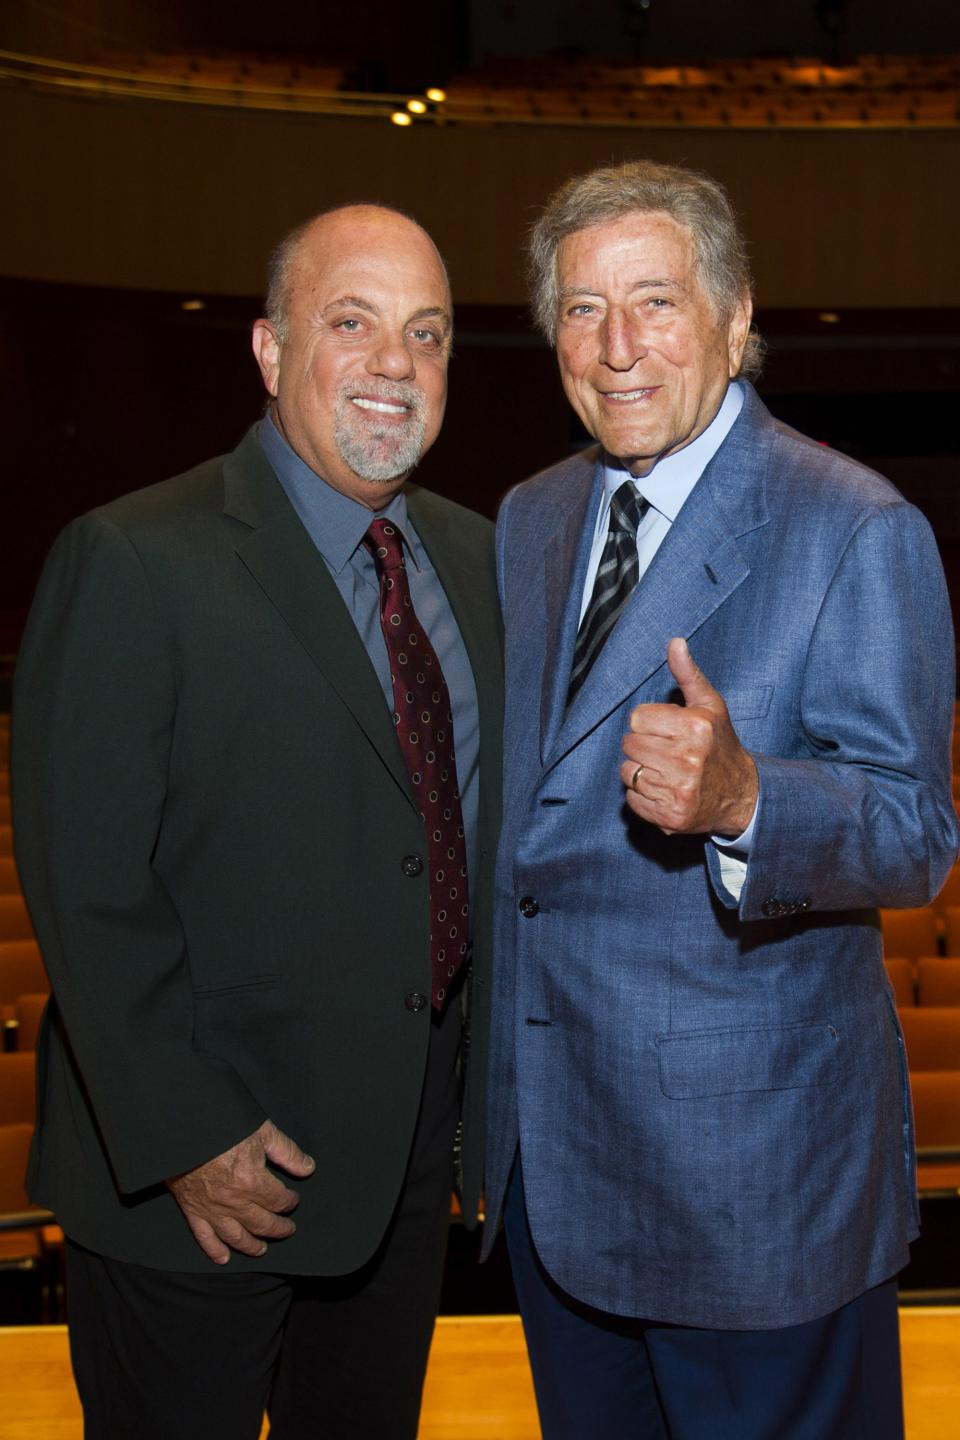 Billy Joel, left, and Tony Bennett pose on stage before a special master class school-wide assembly event for the Frank Sinatra School of the Arts, the public high school Bennett founded, on Thursday, May 30, 2013 in New York. (Photo by Charles Sykes/Invision/AP)